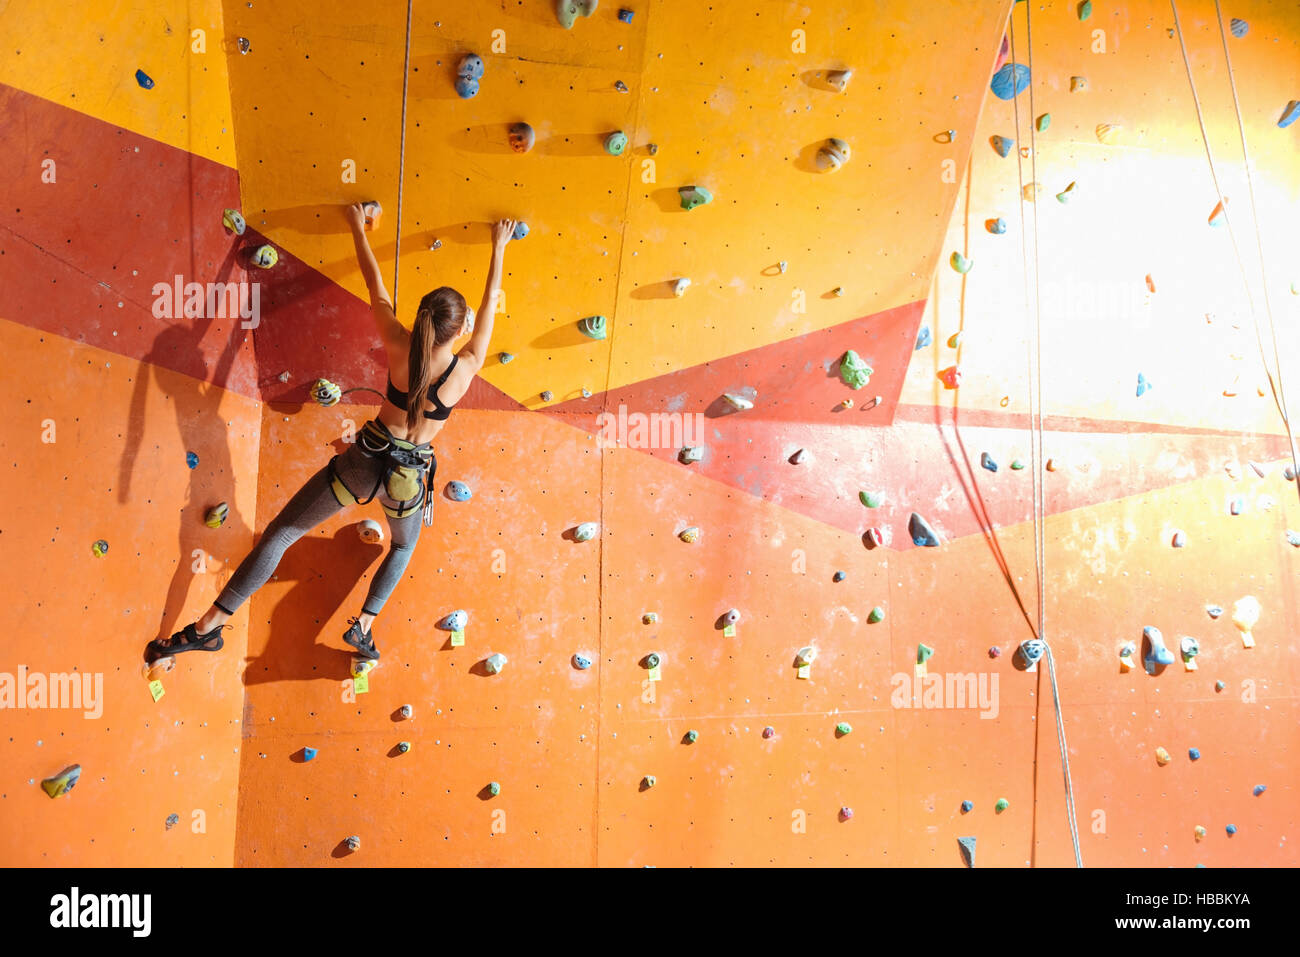 Slim woman climbing up special wall in gym - Stock Image